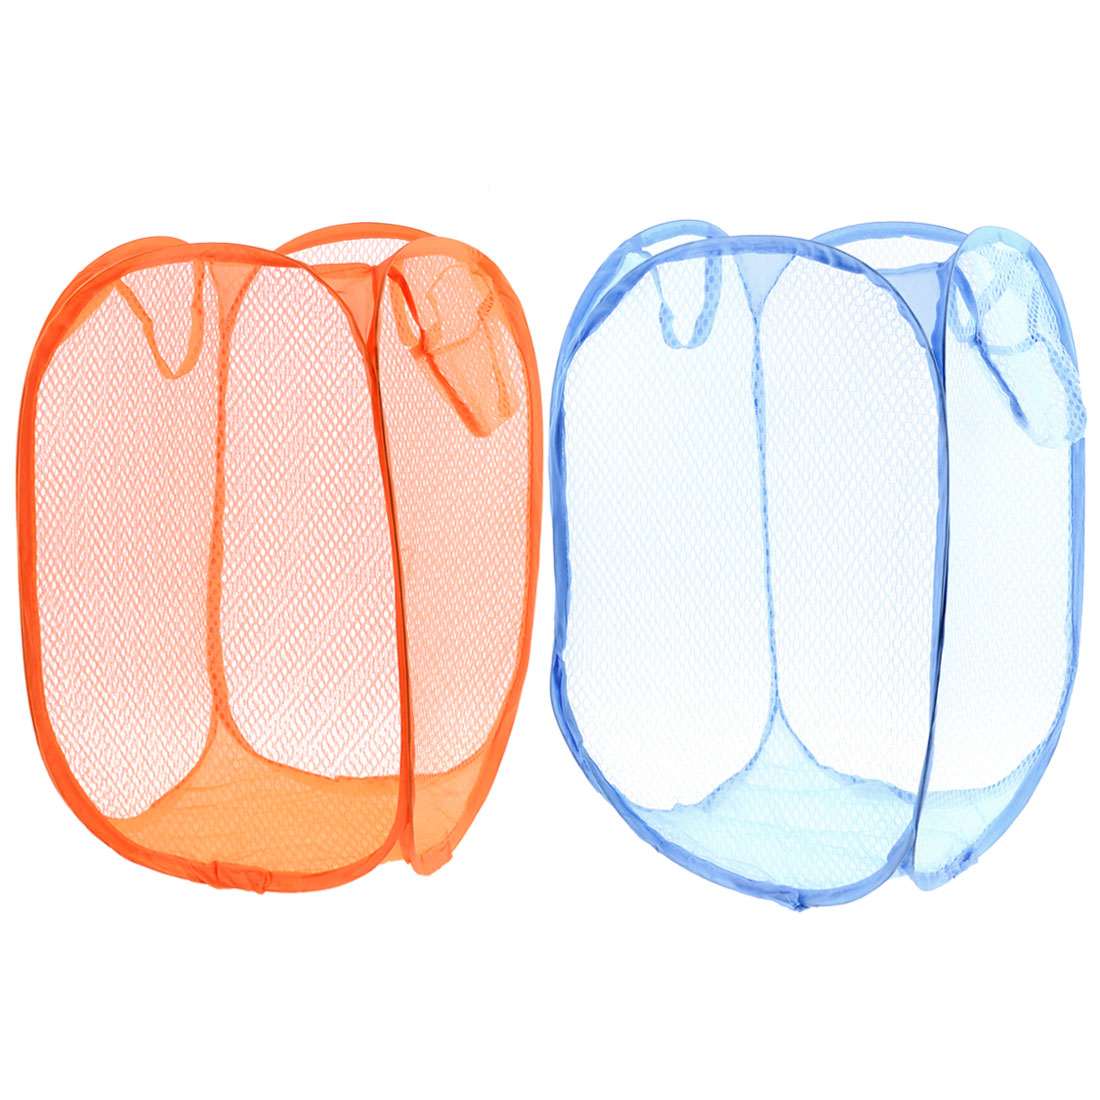 Unique Bargains 2pcs Orange Blue Foldable Meshy Clothes Storage Pop Up Laundry Basket Hamper